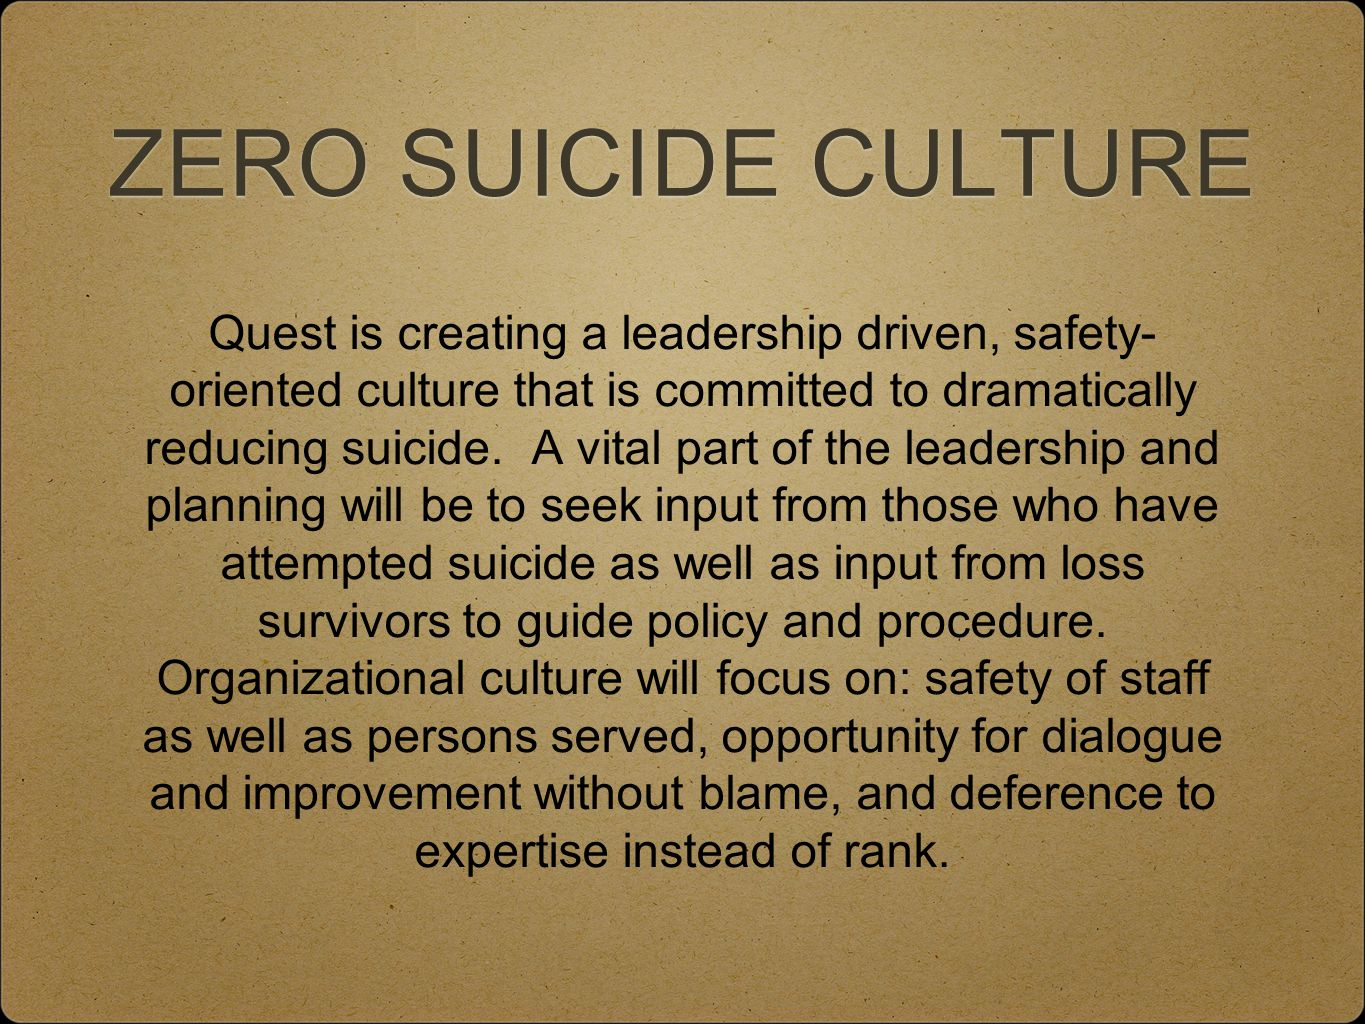 ZERO SUICIDE CULTURE Quest is creating a leadership driven, safety- oriented culture that is committed to dramatically reducing suicide.